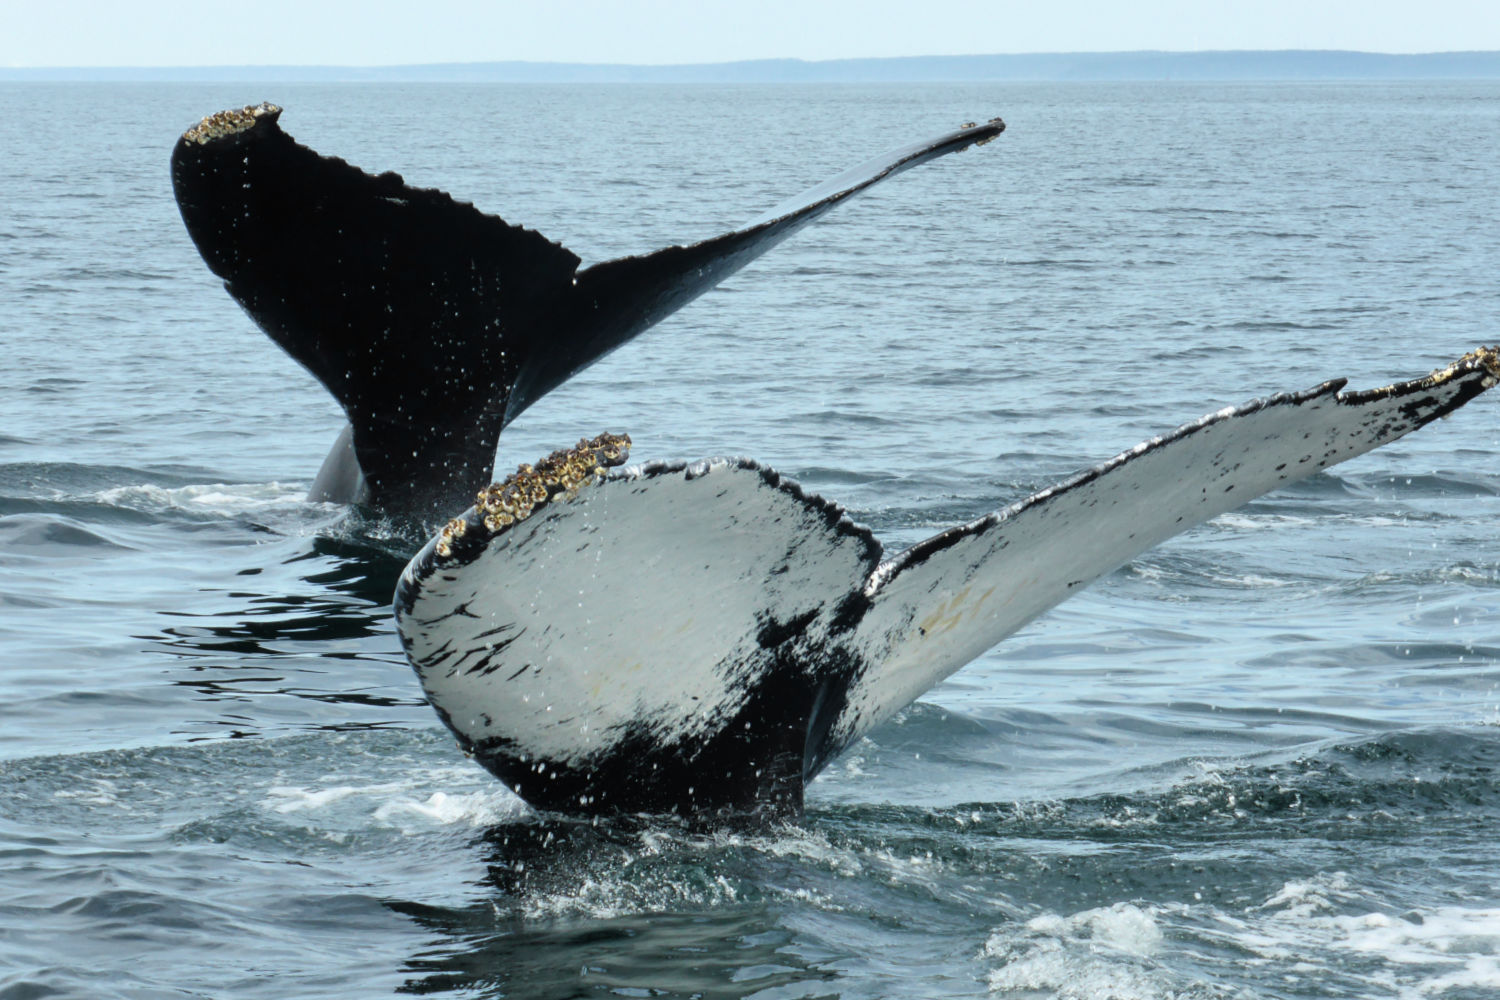 Whale watching one of the best things to do in Nova Scotia